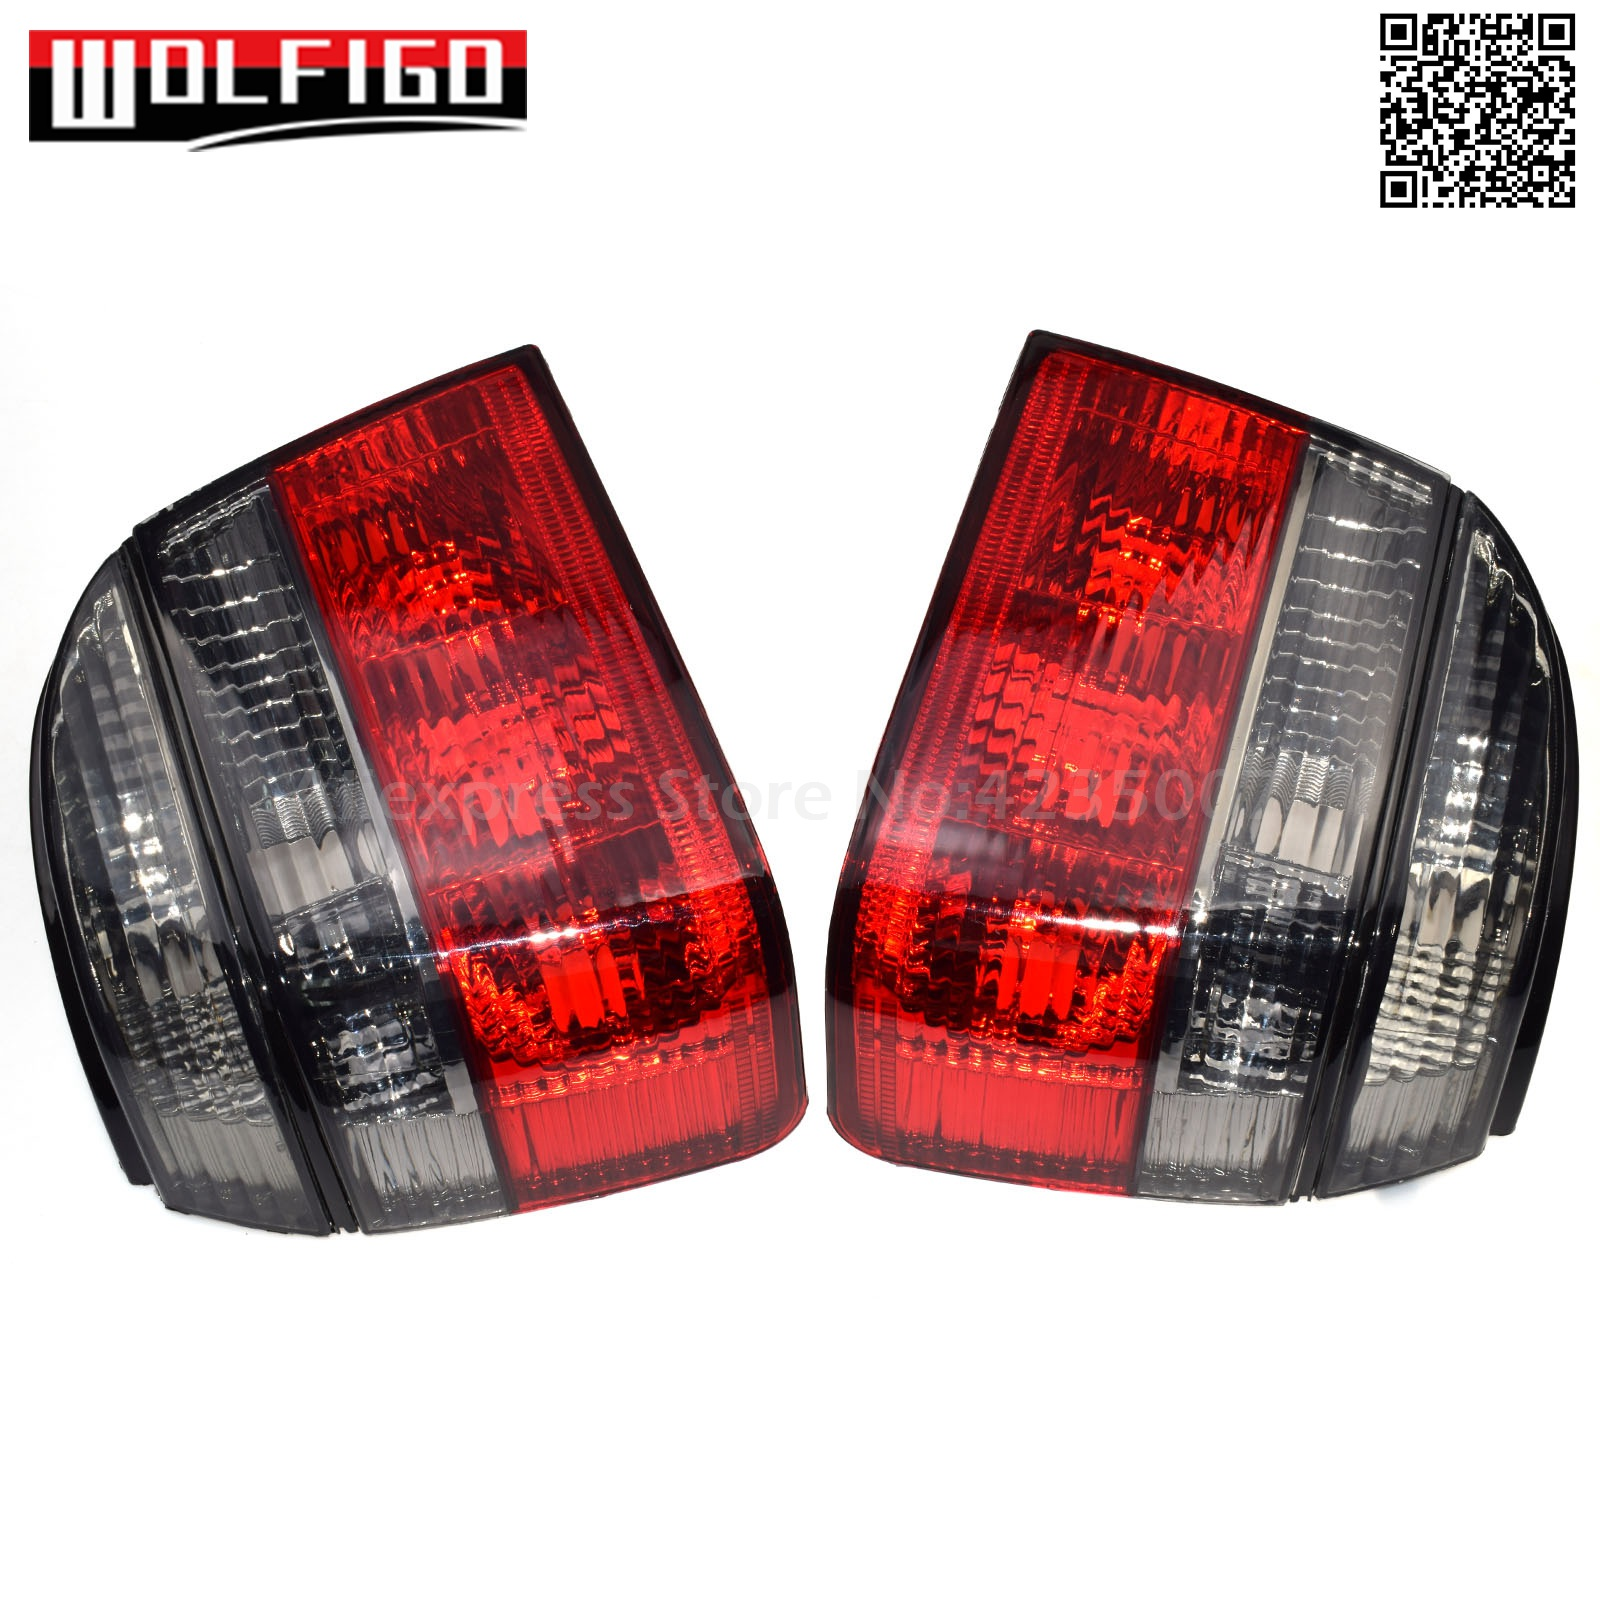 WOLFIGO New Left Right Car Tail Lights Red Smoke For VW Golf Mk3 1993-1999 1EM945112,1EM945111